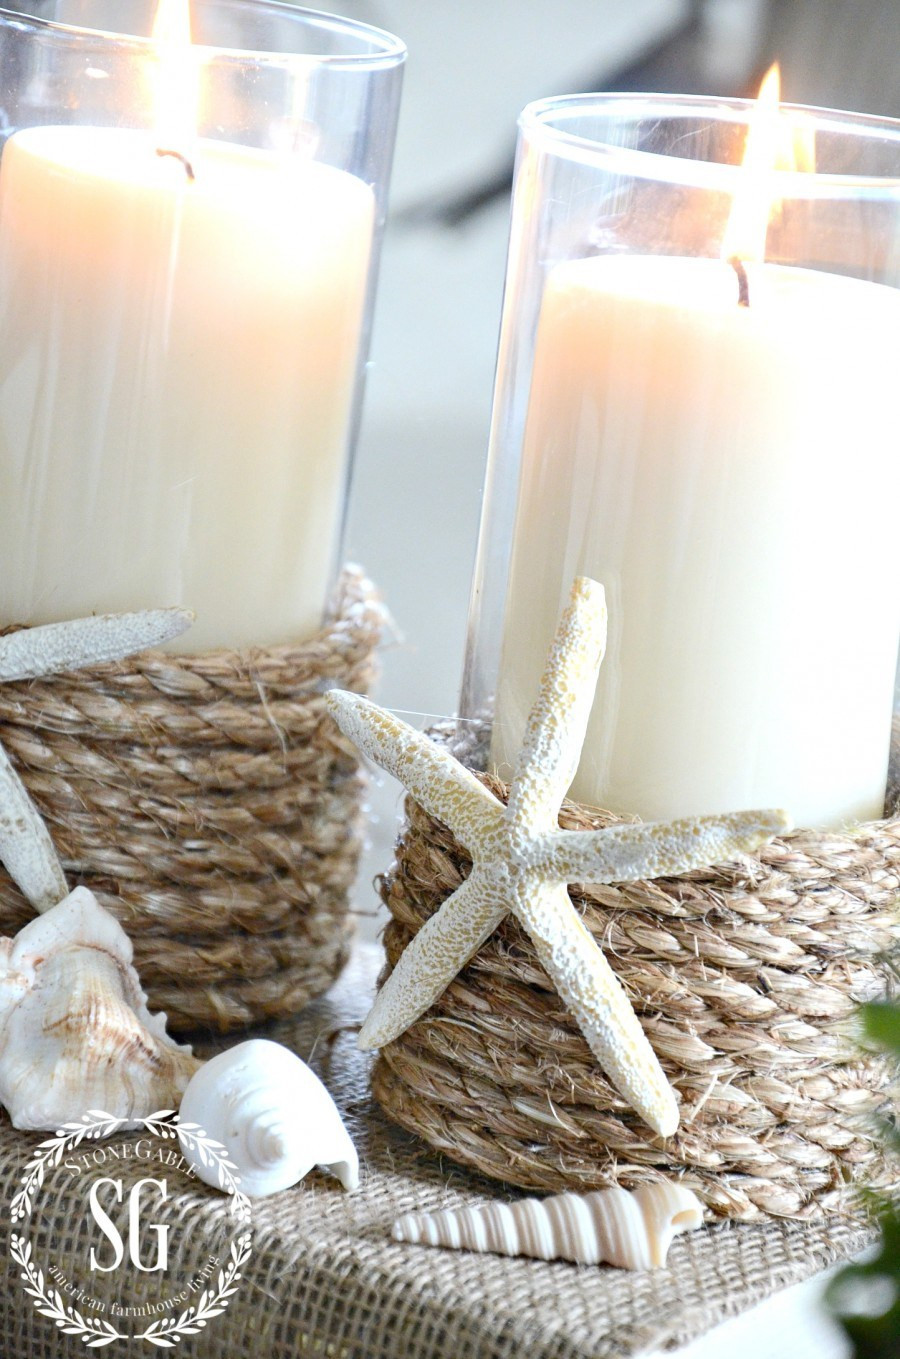 Best ideas about DIY Candle Holders . Save or Pin POTTERY BARN INSPIRED ROPE WRAPPED CANDLEHOLDER DIY Now.